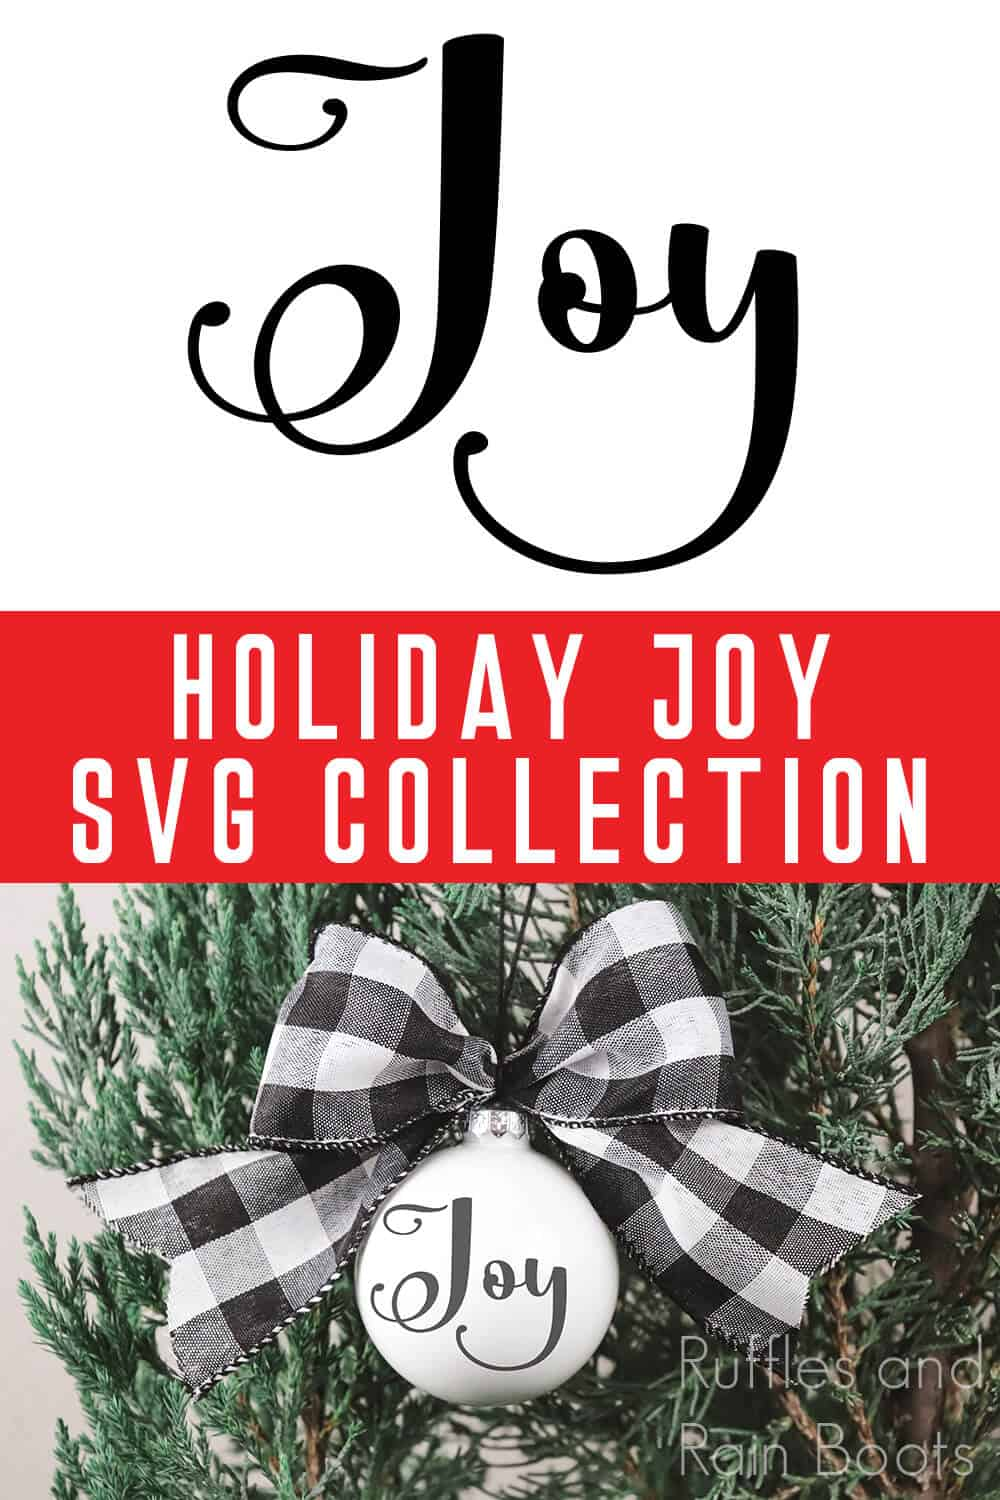 photo collage of flourished joy Christmas SVG with text which reads holiday joy SVG collection